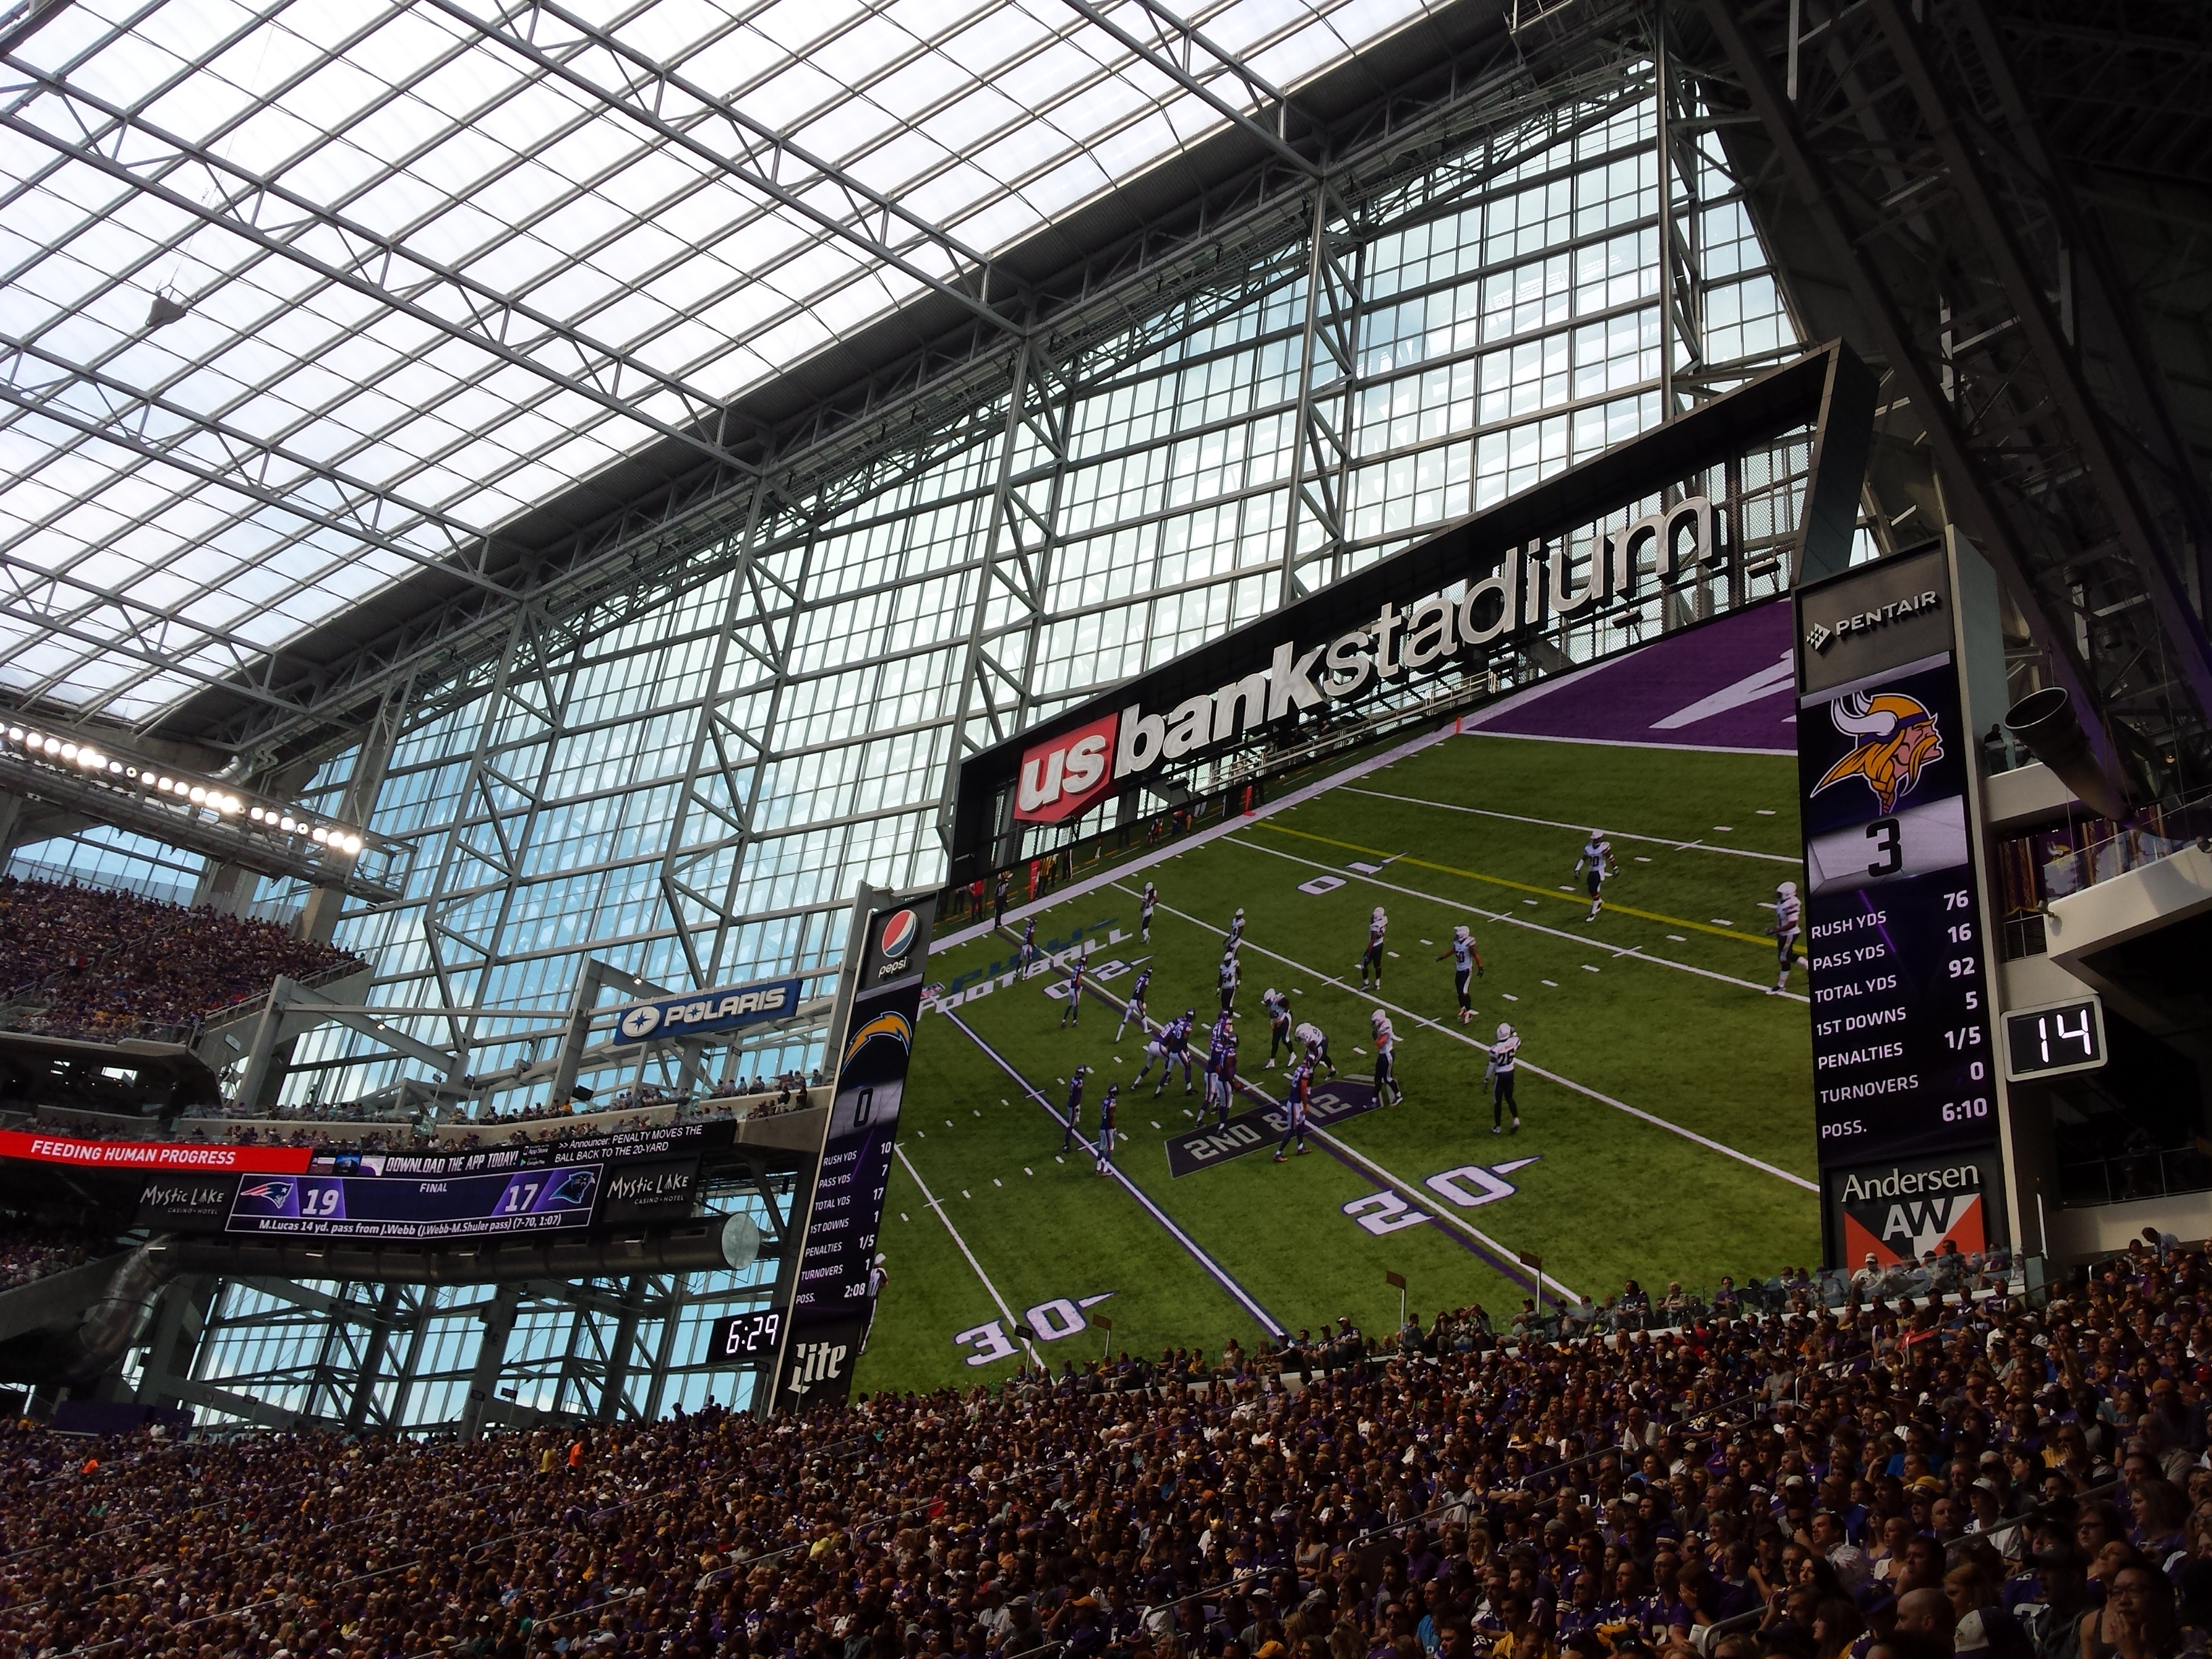 Minnesota Vikings U.S. Bank Stadium First Game - New Jumbotron